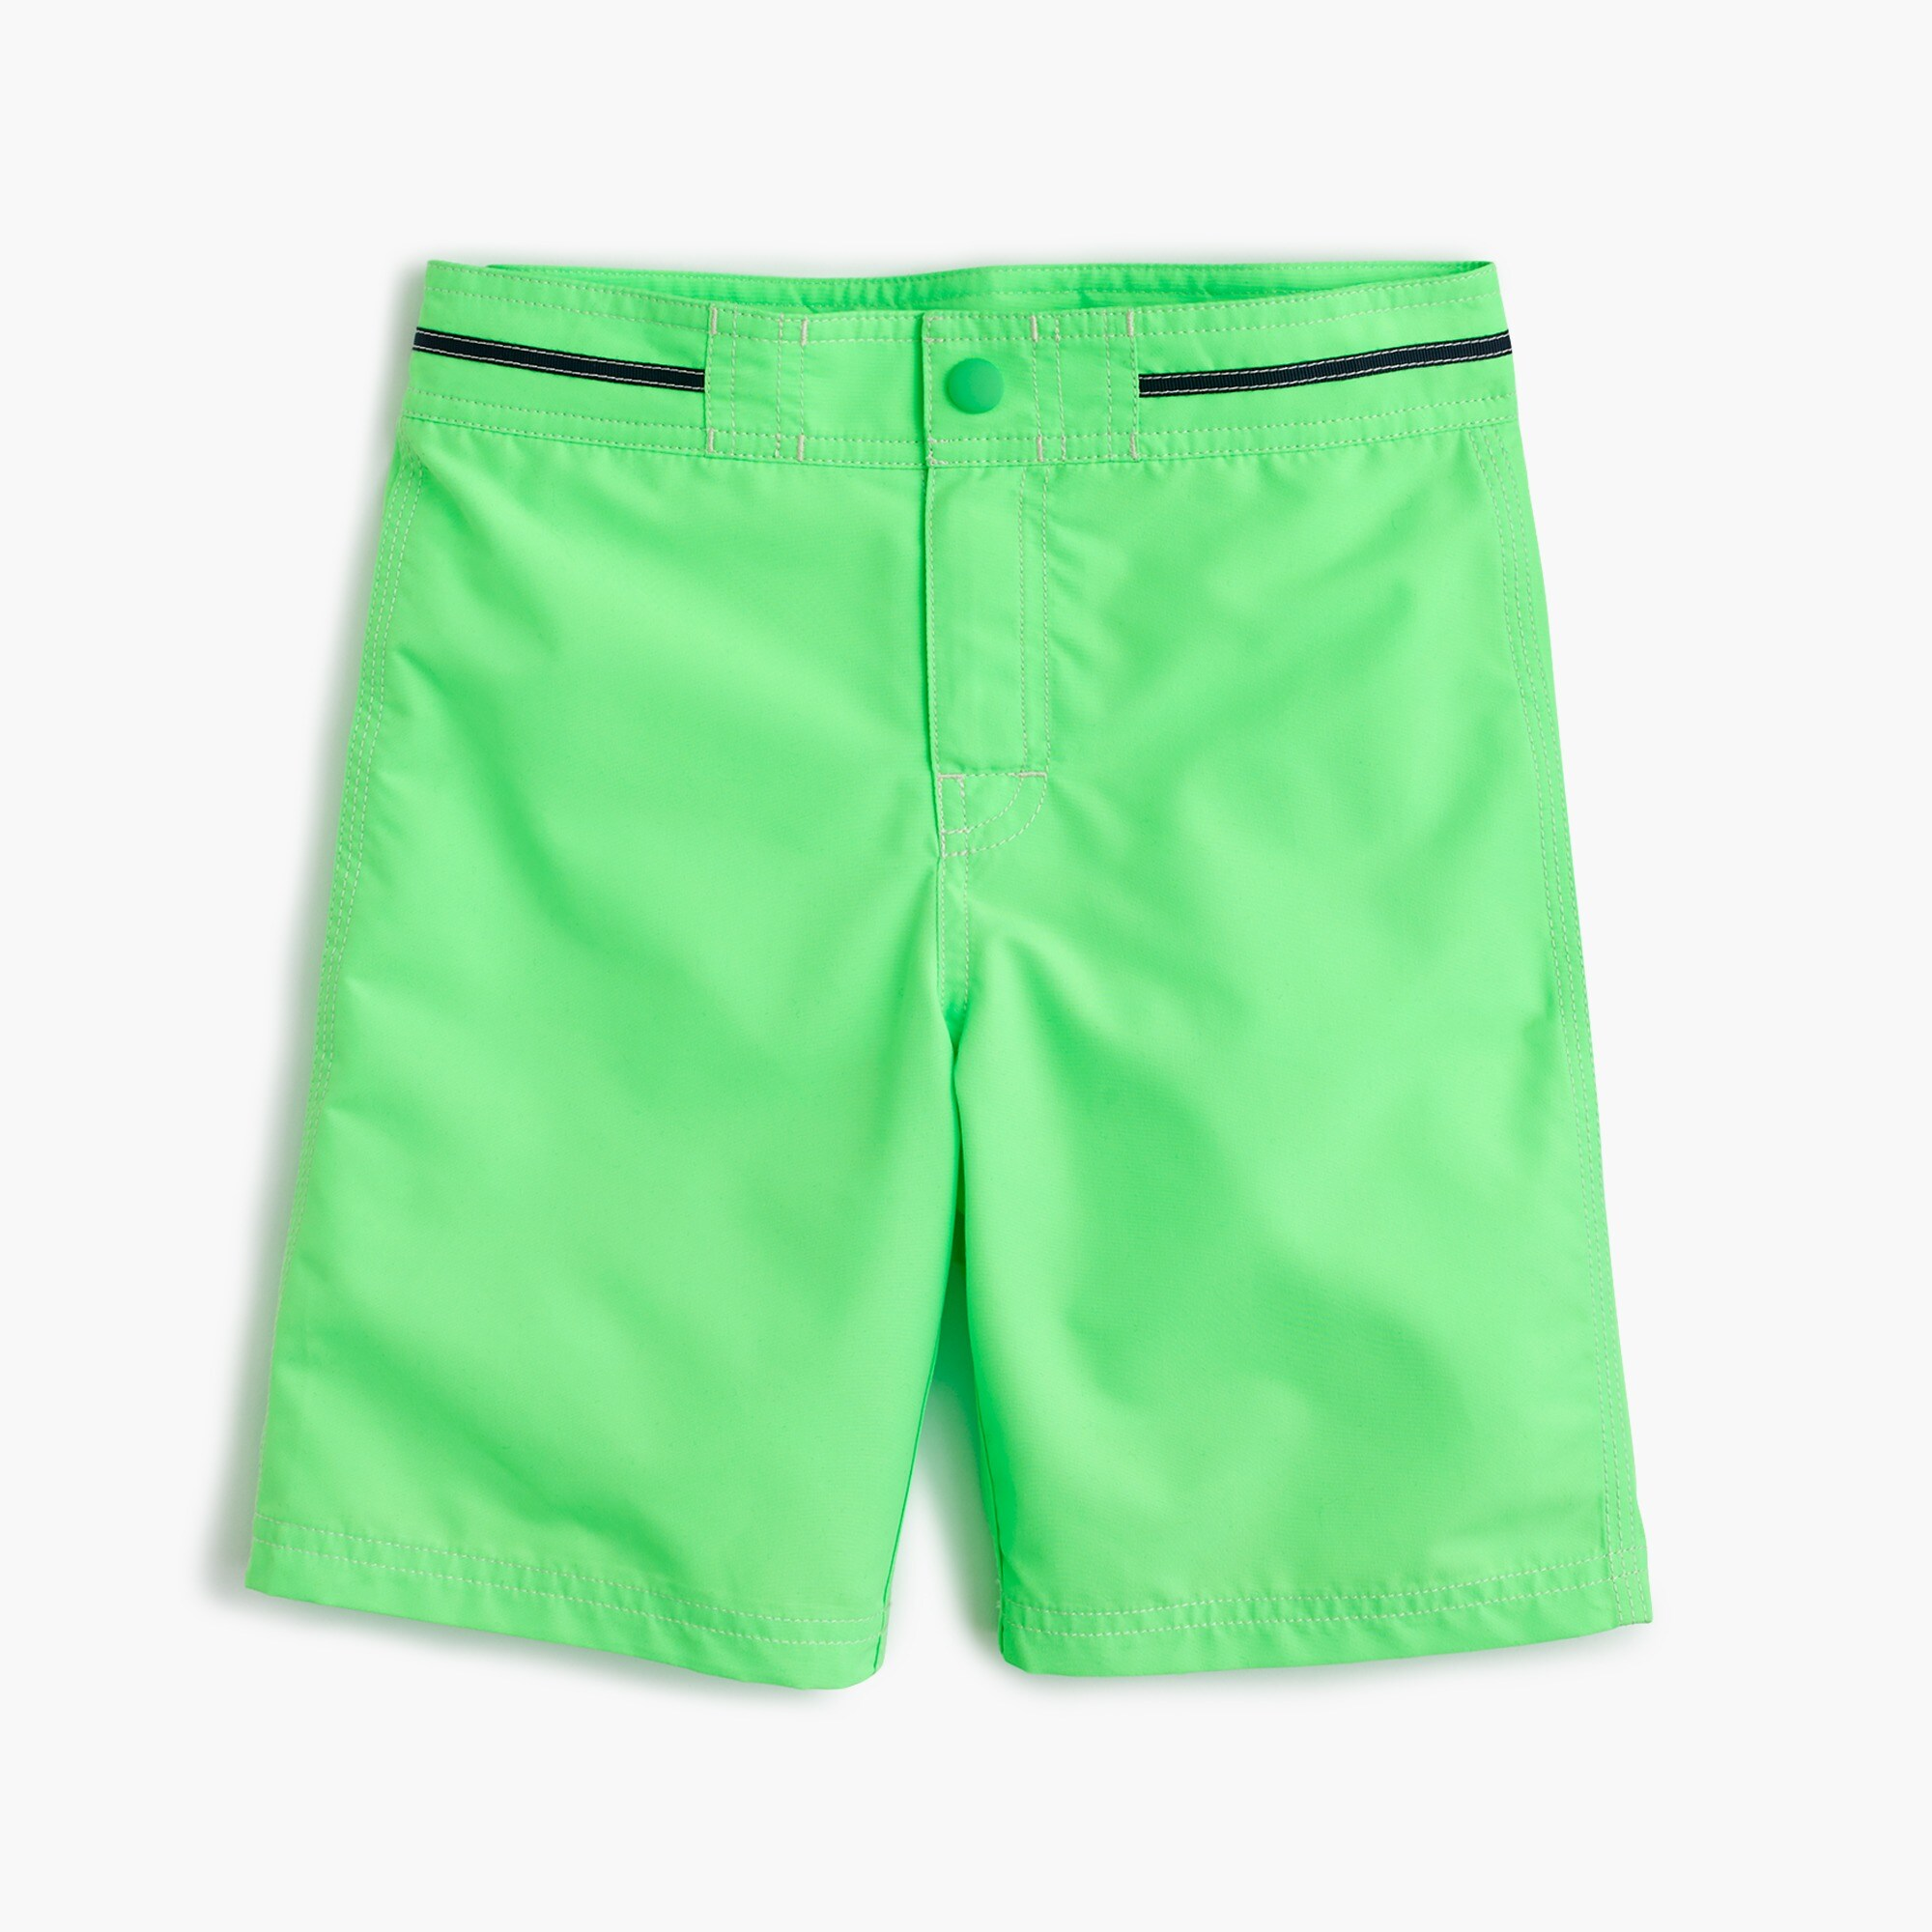 Image 2 for Boys' snap-front board short in neon